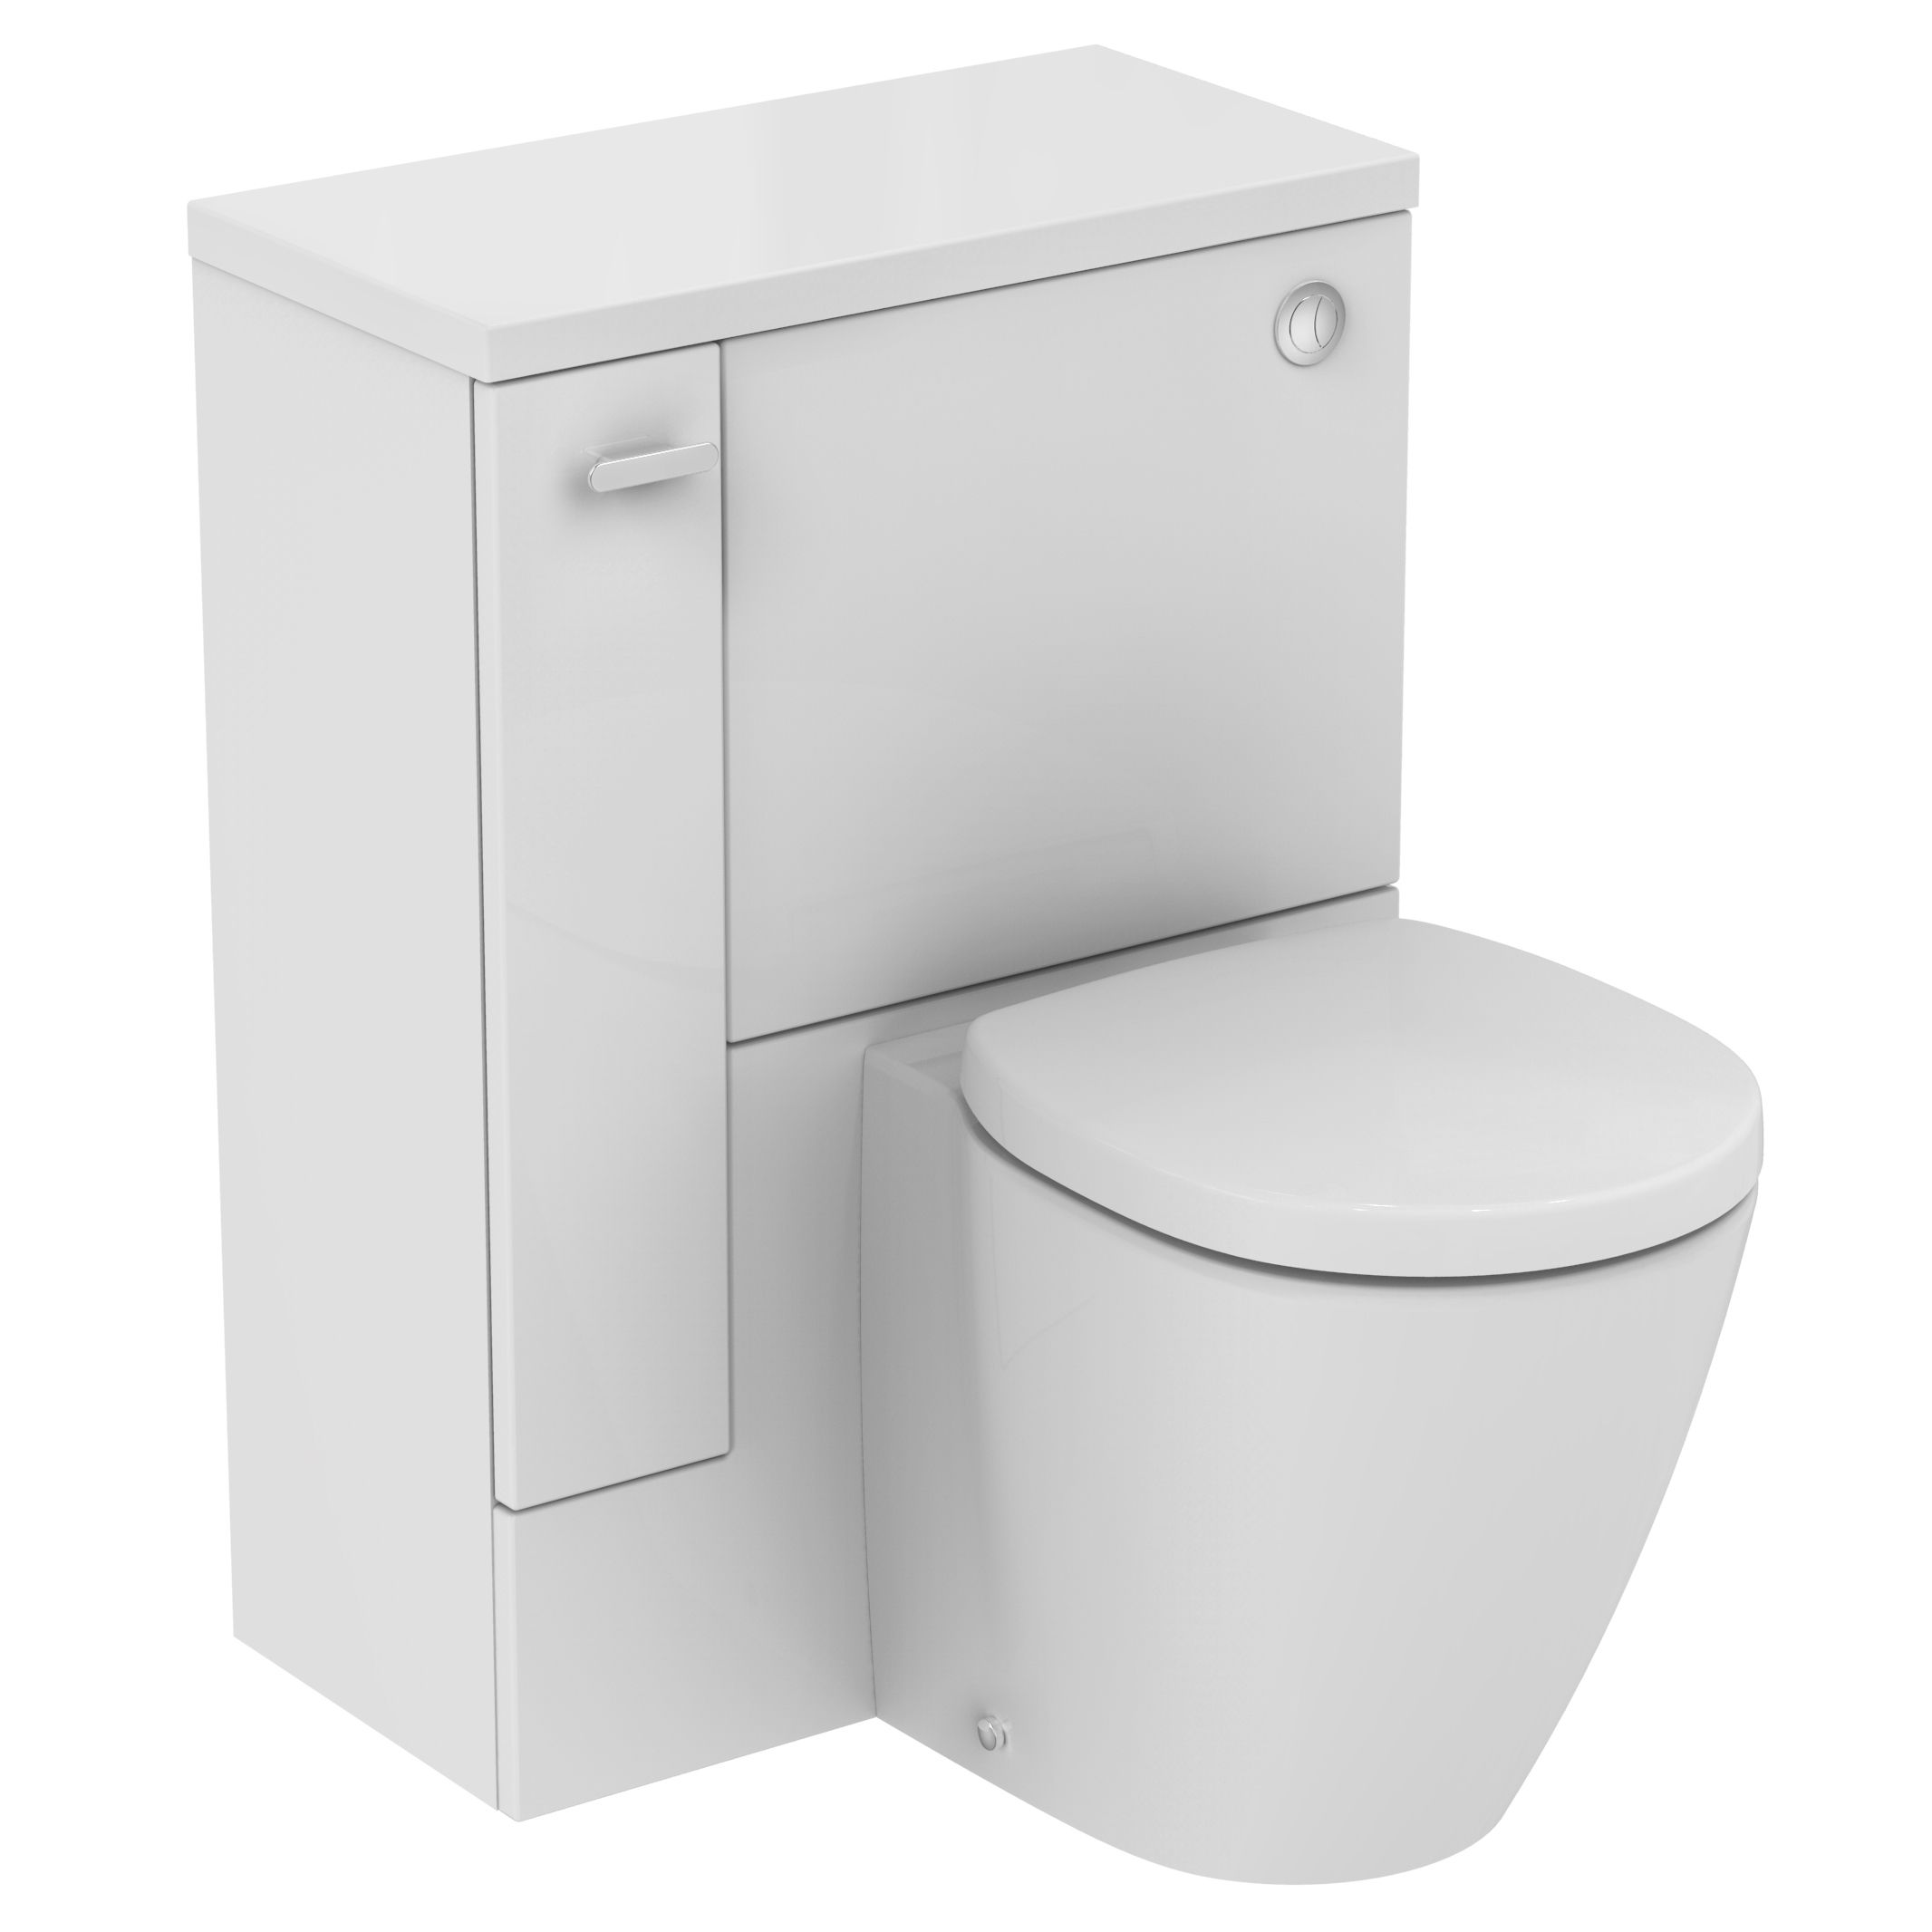 Gäste Wc Waschtisch Ideal Standard Ideal Standard Imagine Compact Lh Back To Wall Toilet Unit